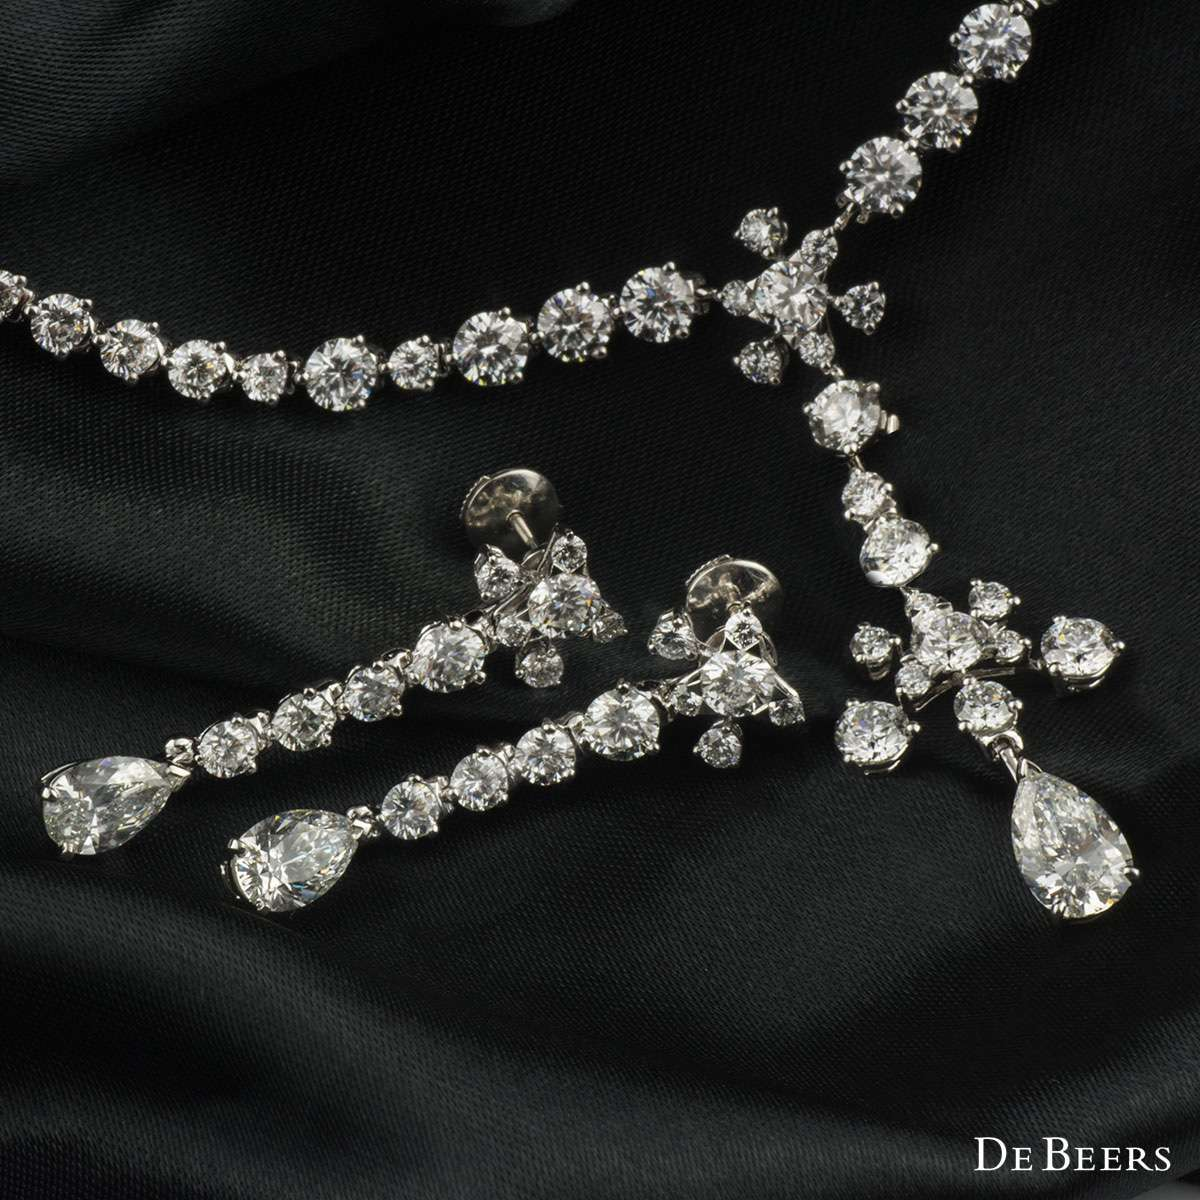 De Beers Lea Diamond Necklace and Earring Suite 19.68ct